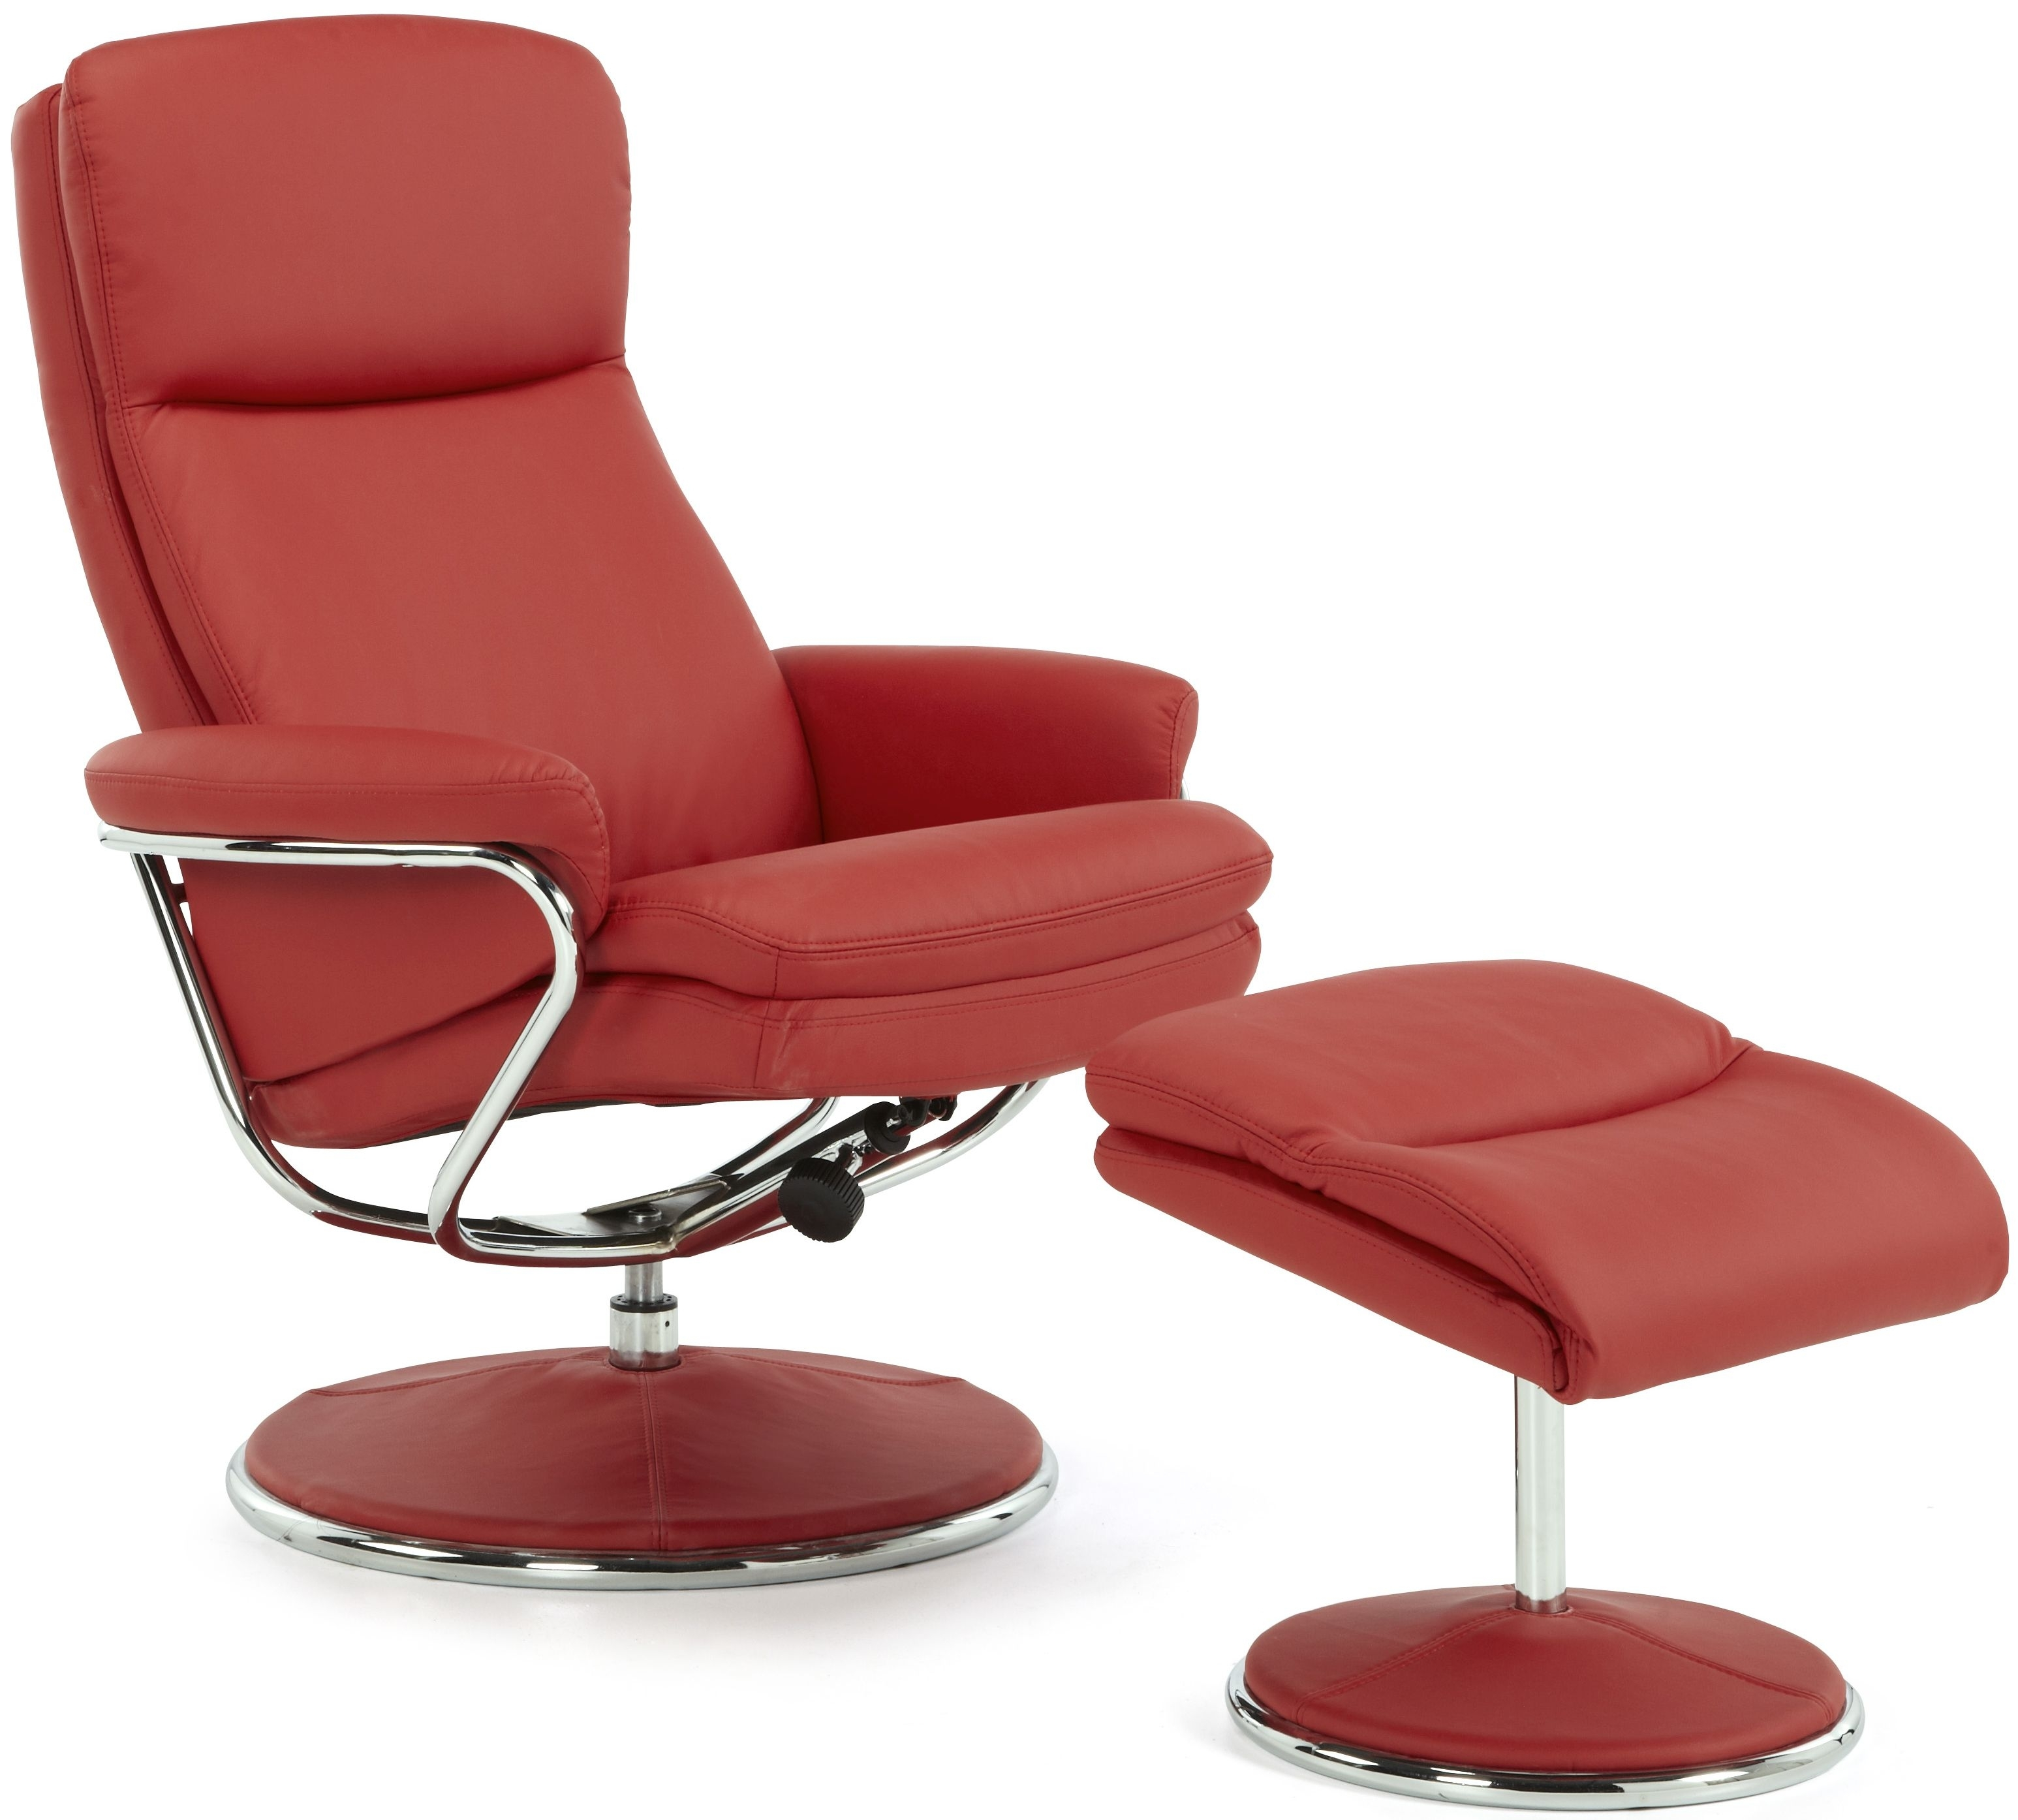 Serene Halden Red Faux Leather Recliner Chair